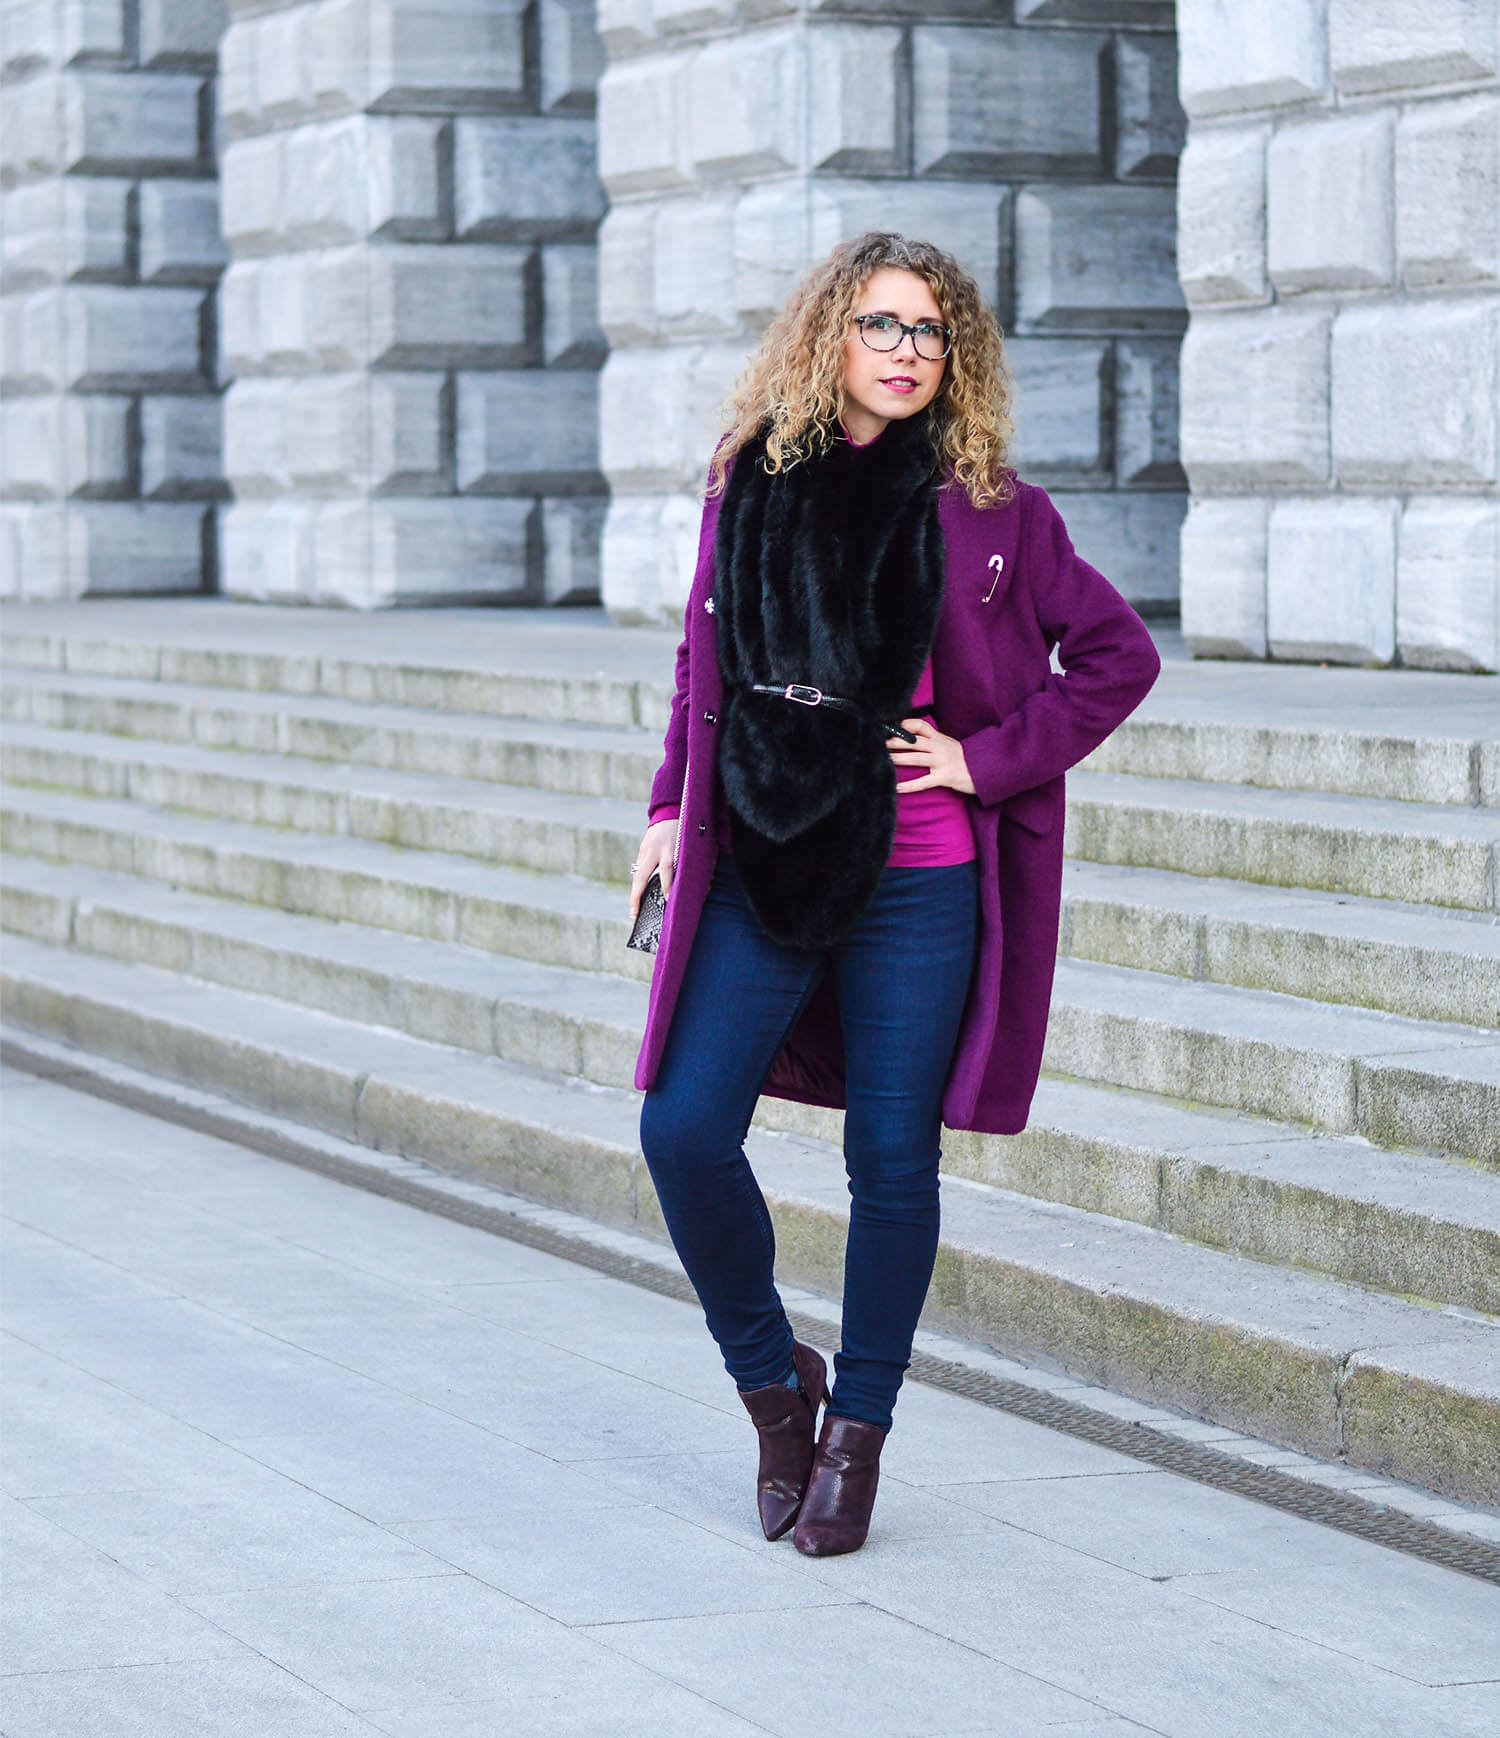 Kationette-fashionblog-Outfit-streetstyle-FakeFur-woolCoat-Furla-ankleBooties-curls